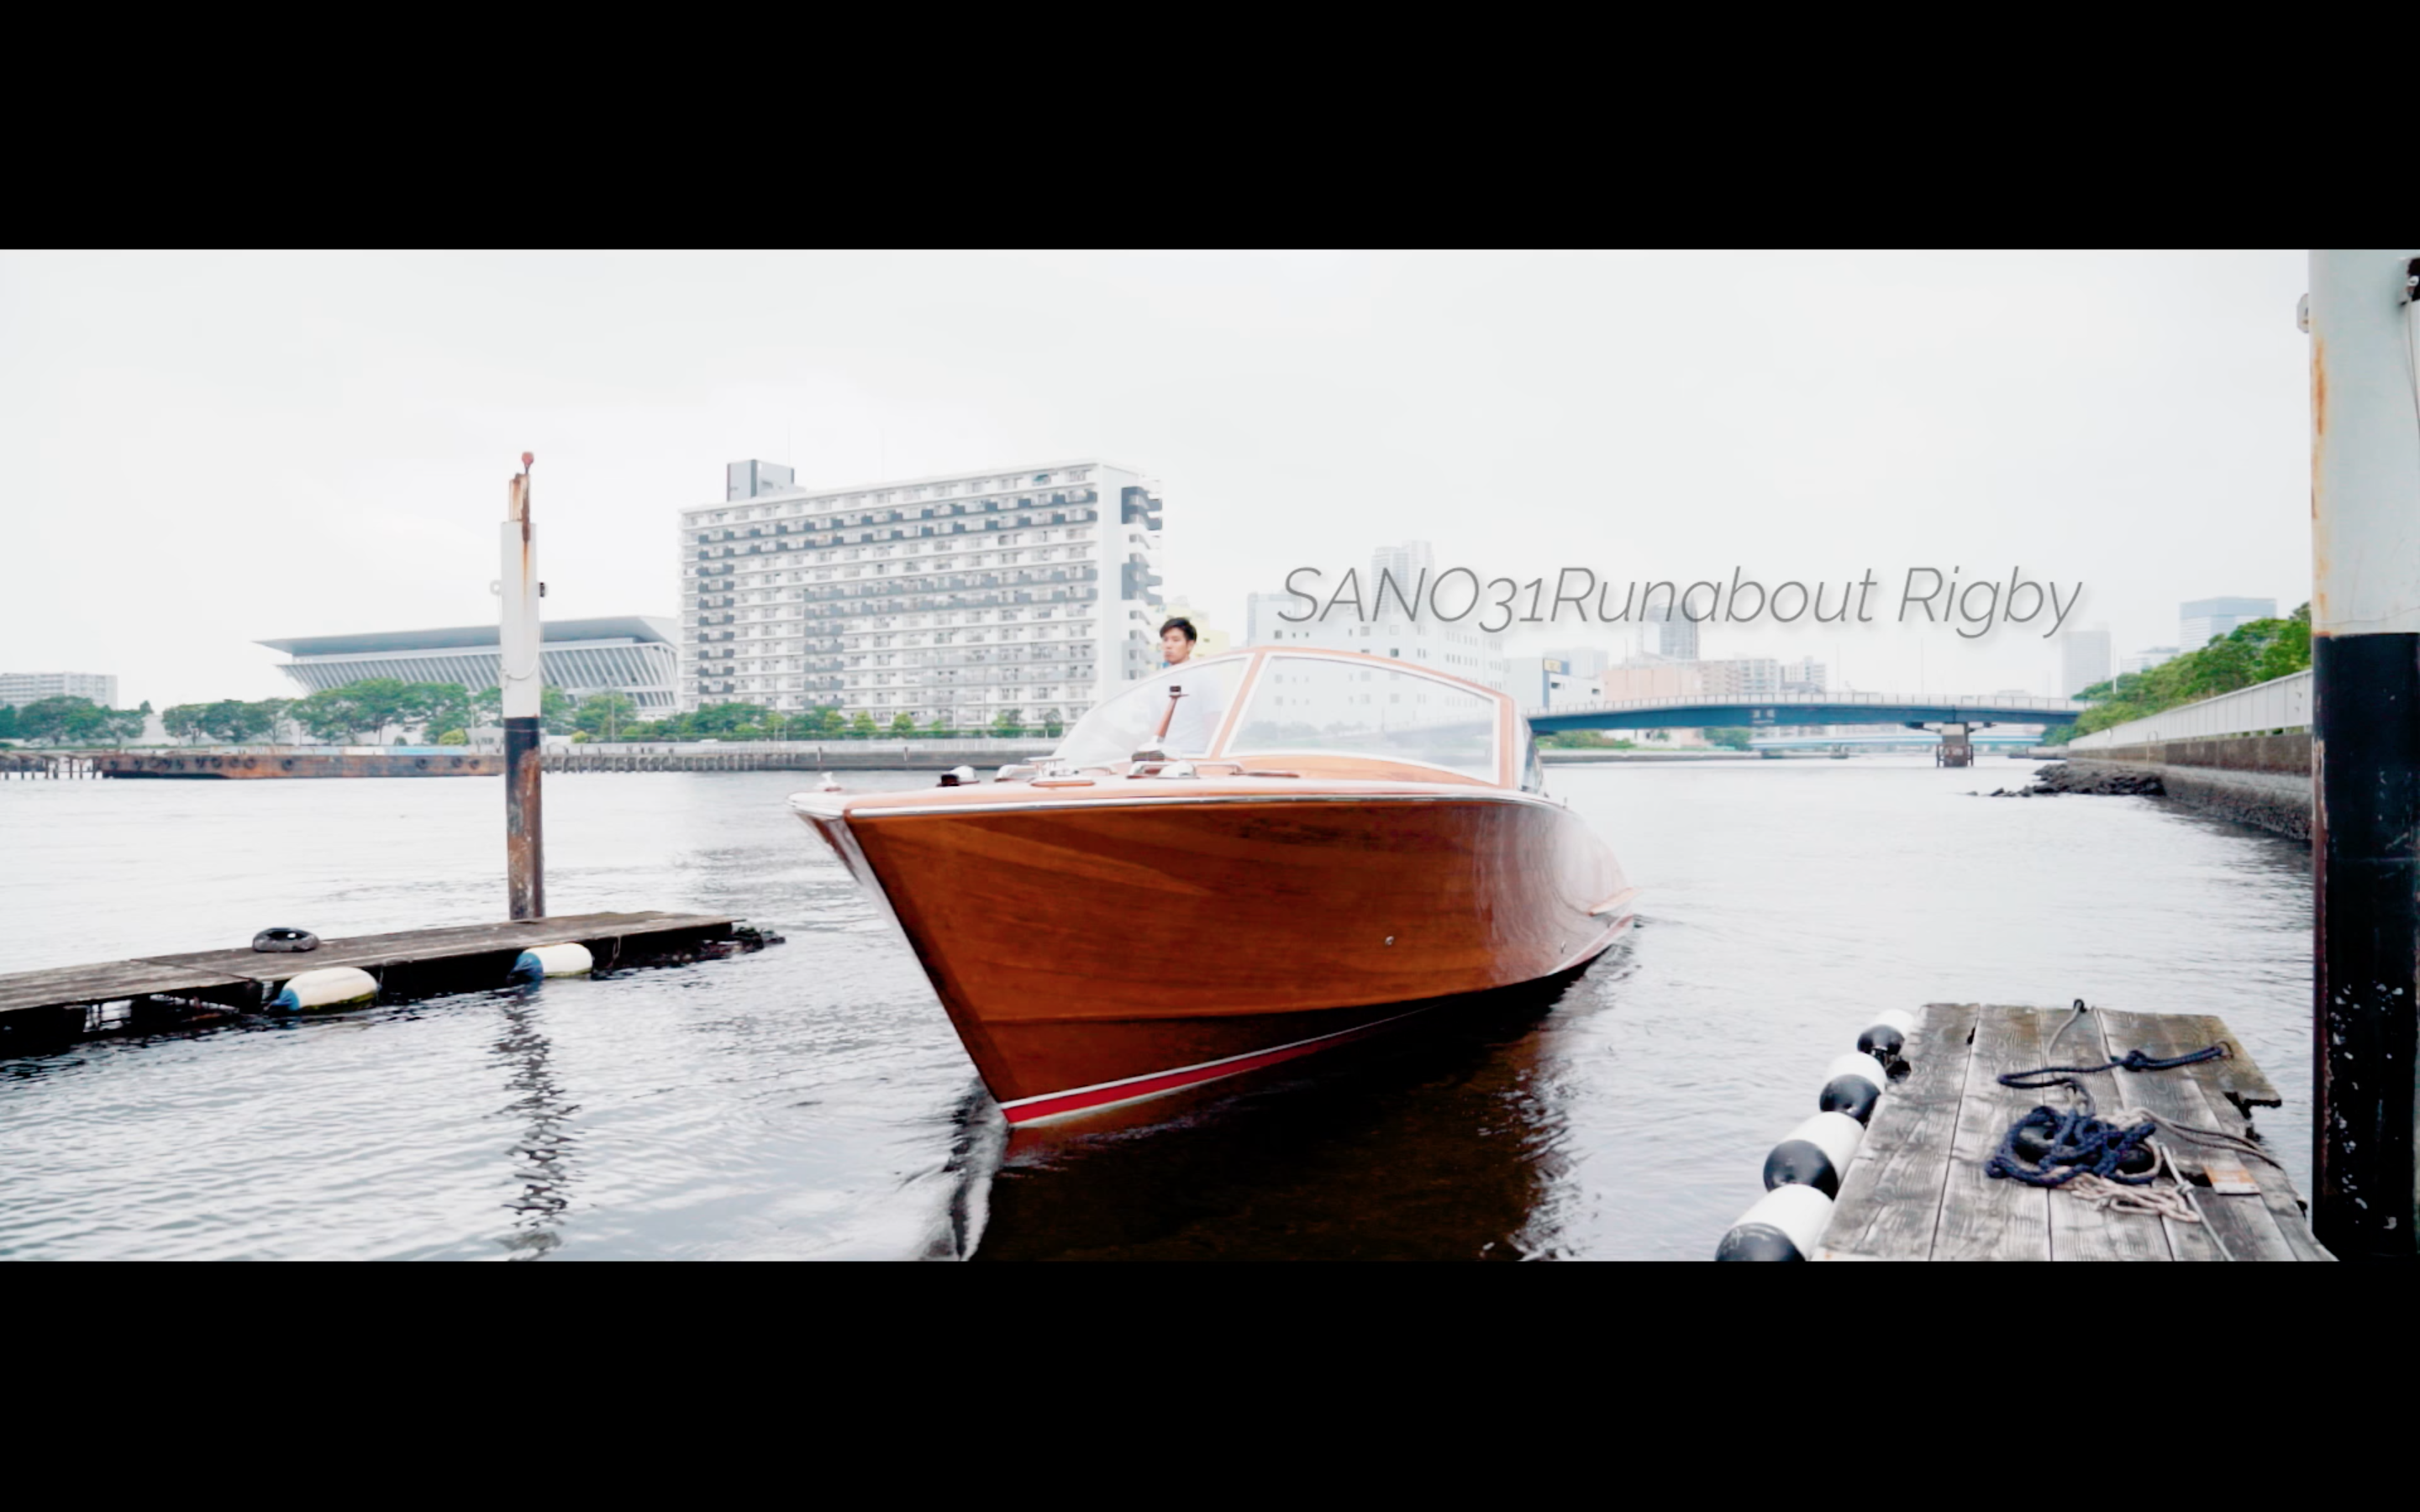 SANO 31 Runabout Rigby